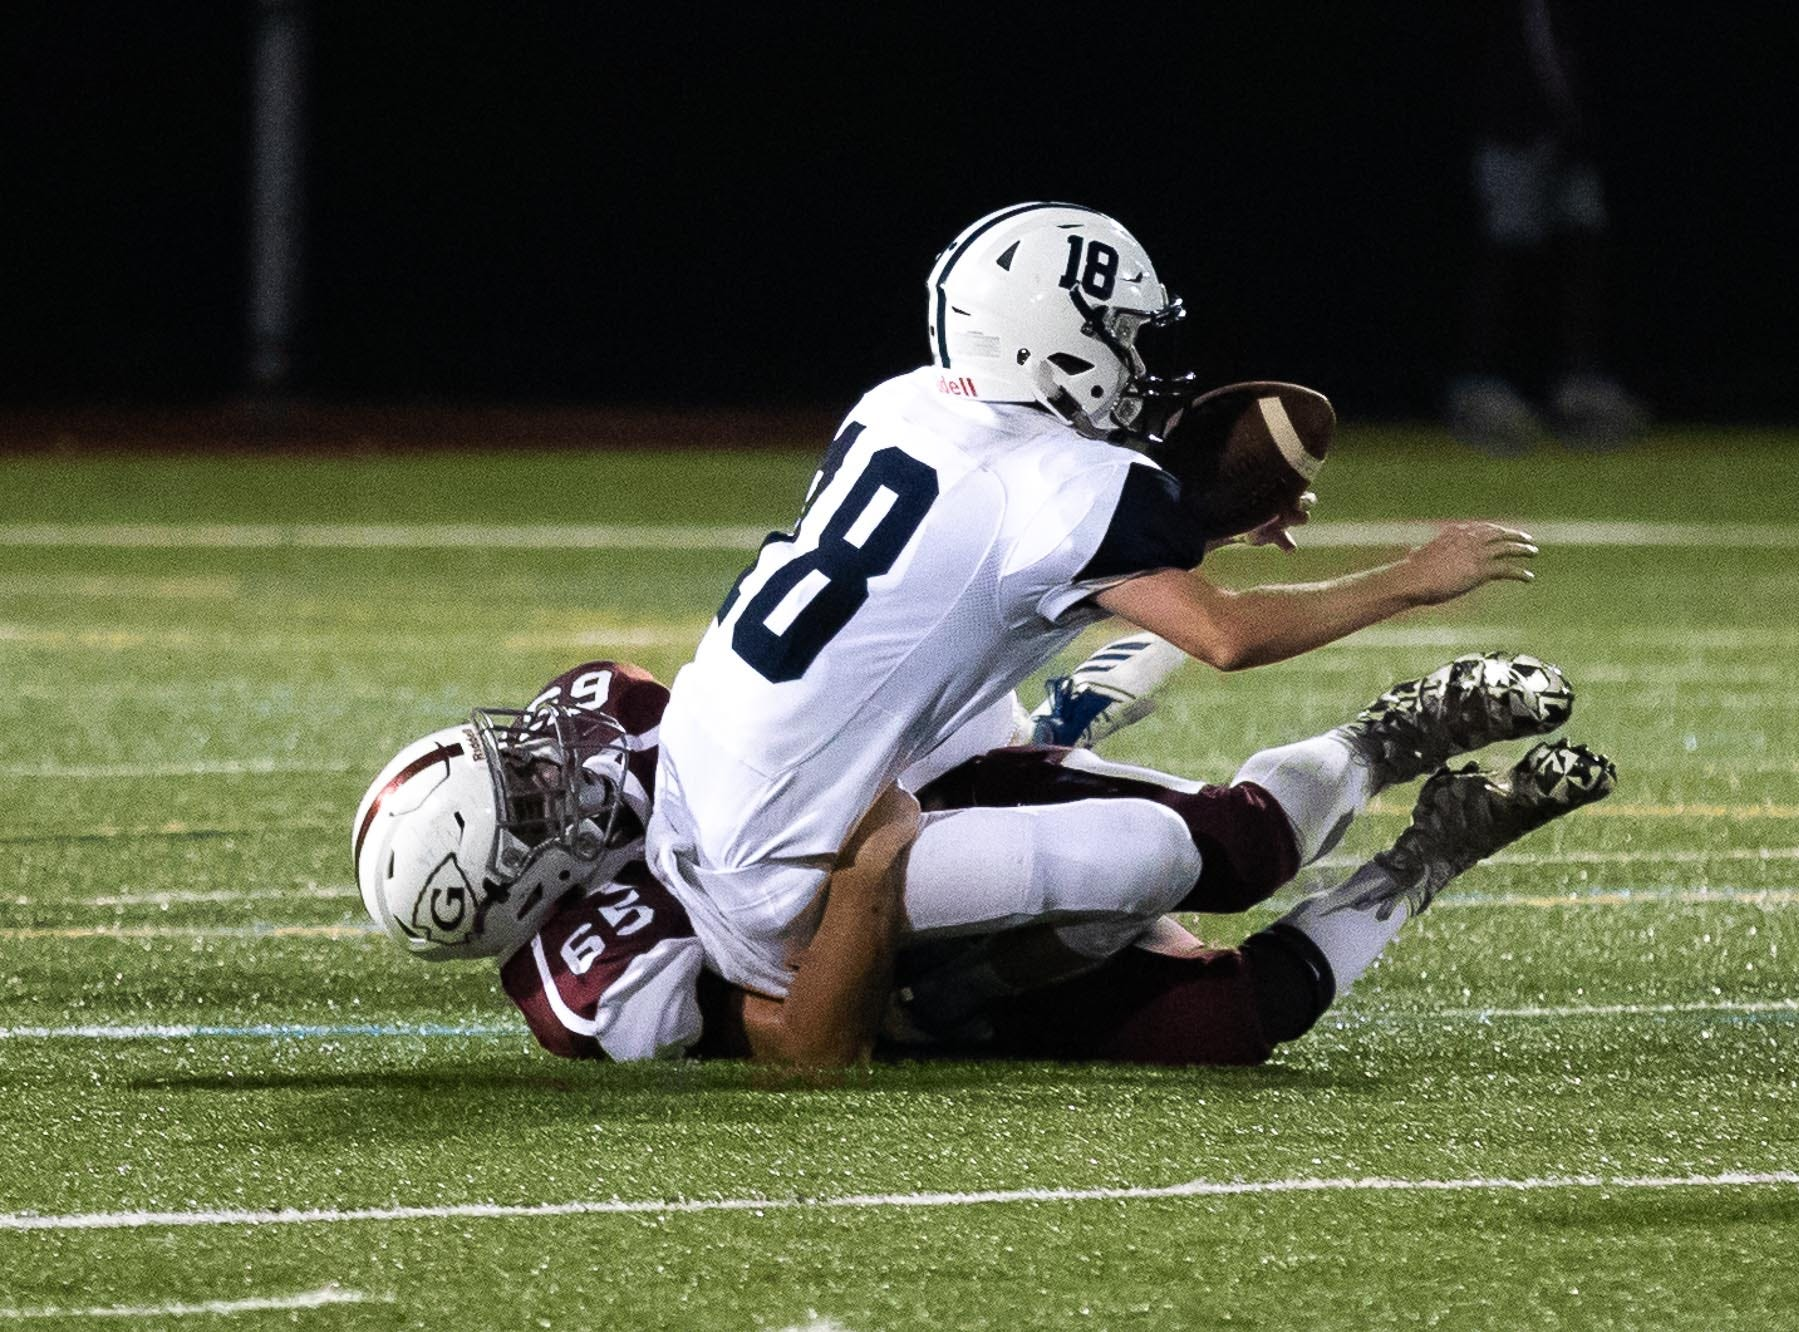 West York's Corey Wise (18) is brought down by Gettysburg's Jacob Schaub (65) during a football game between Gettysburg and West York, Friday, Sept. 14, 2018, in Gettysburg. Gettysburg defeated West York 42-22.